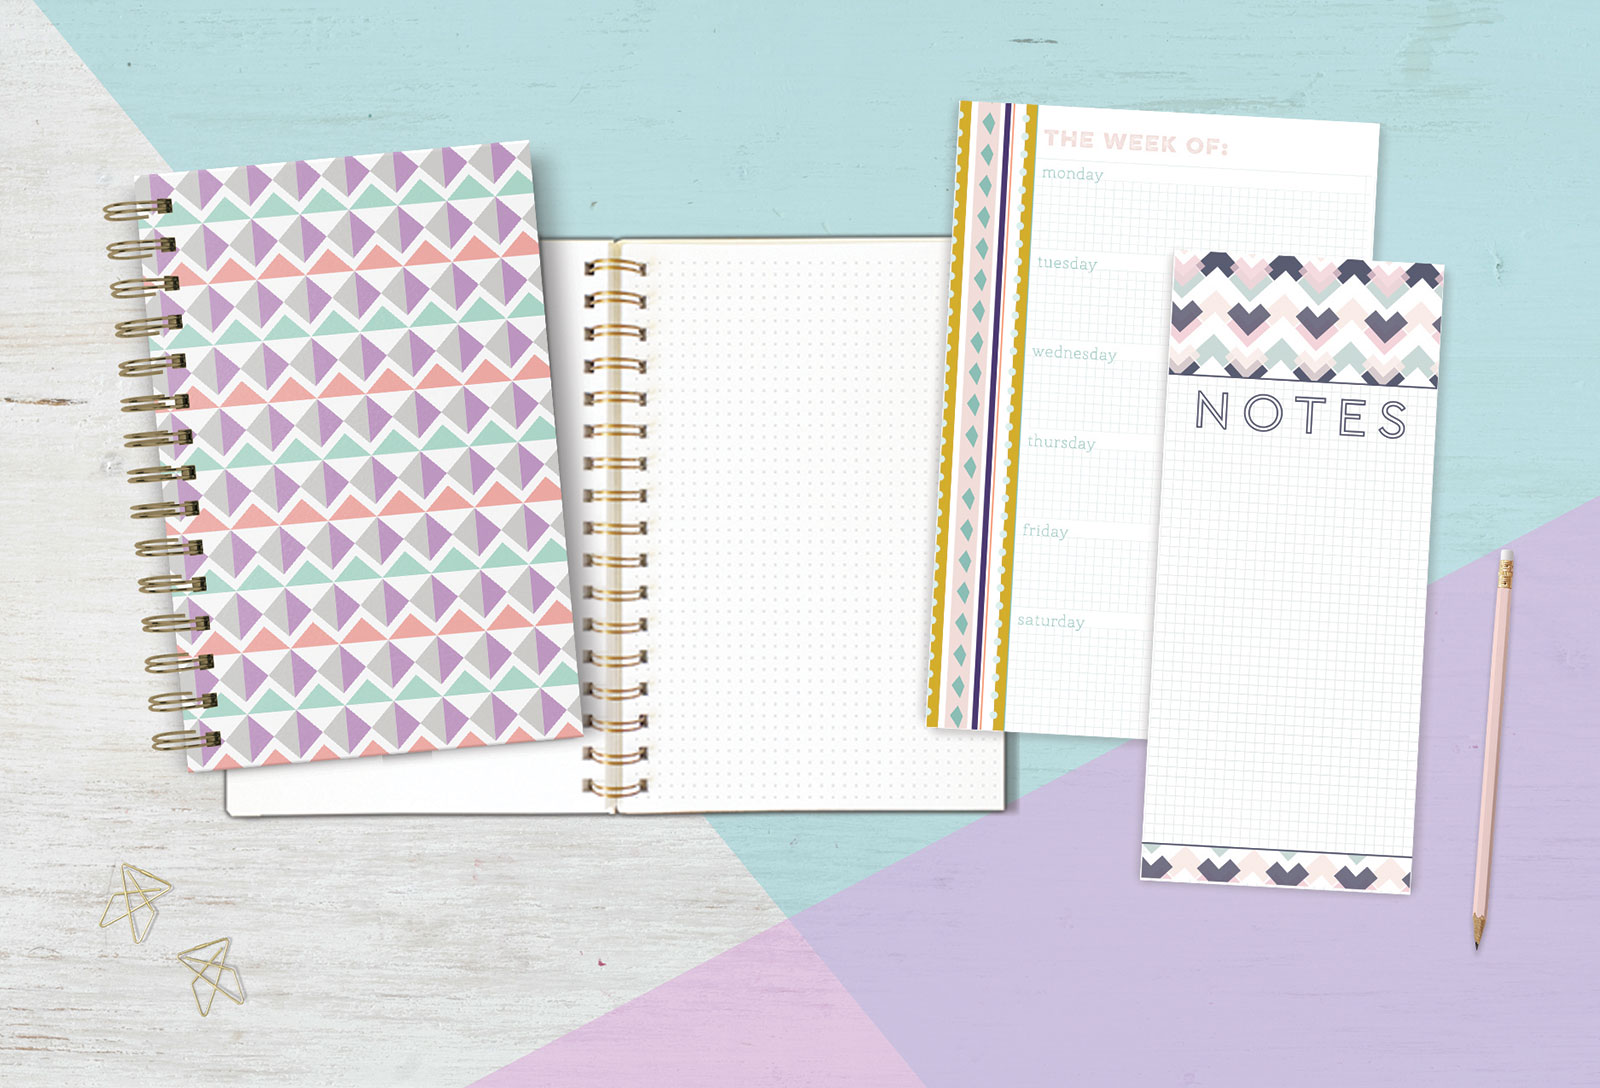 Craftbelly-Journals-Notepads.jpg